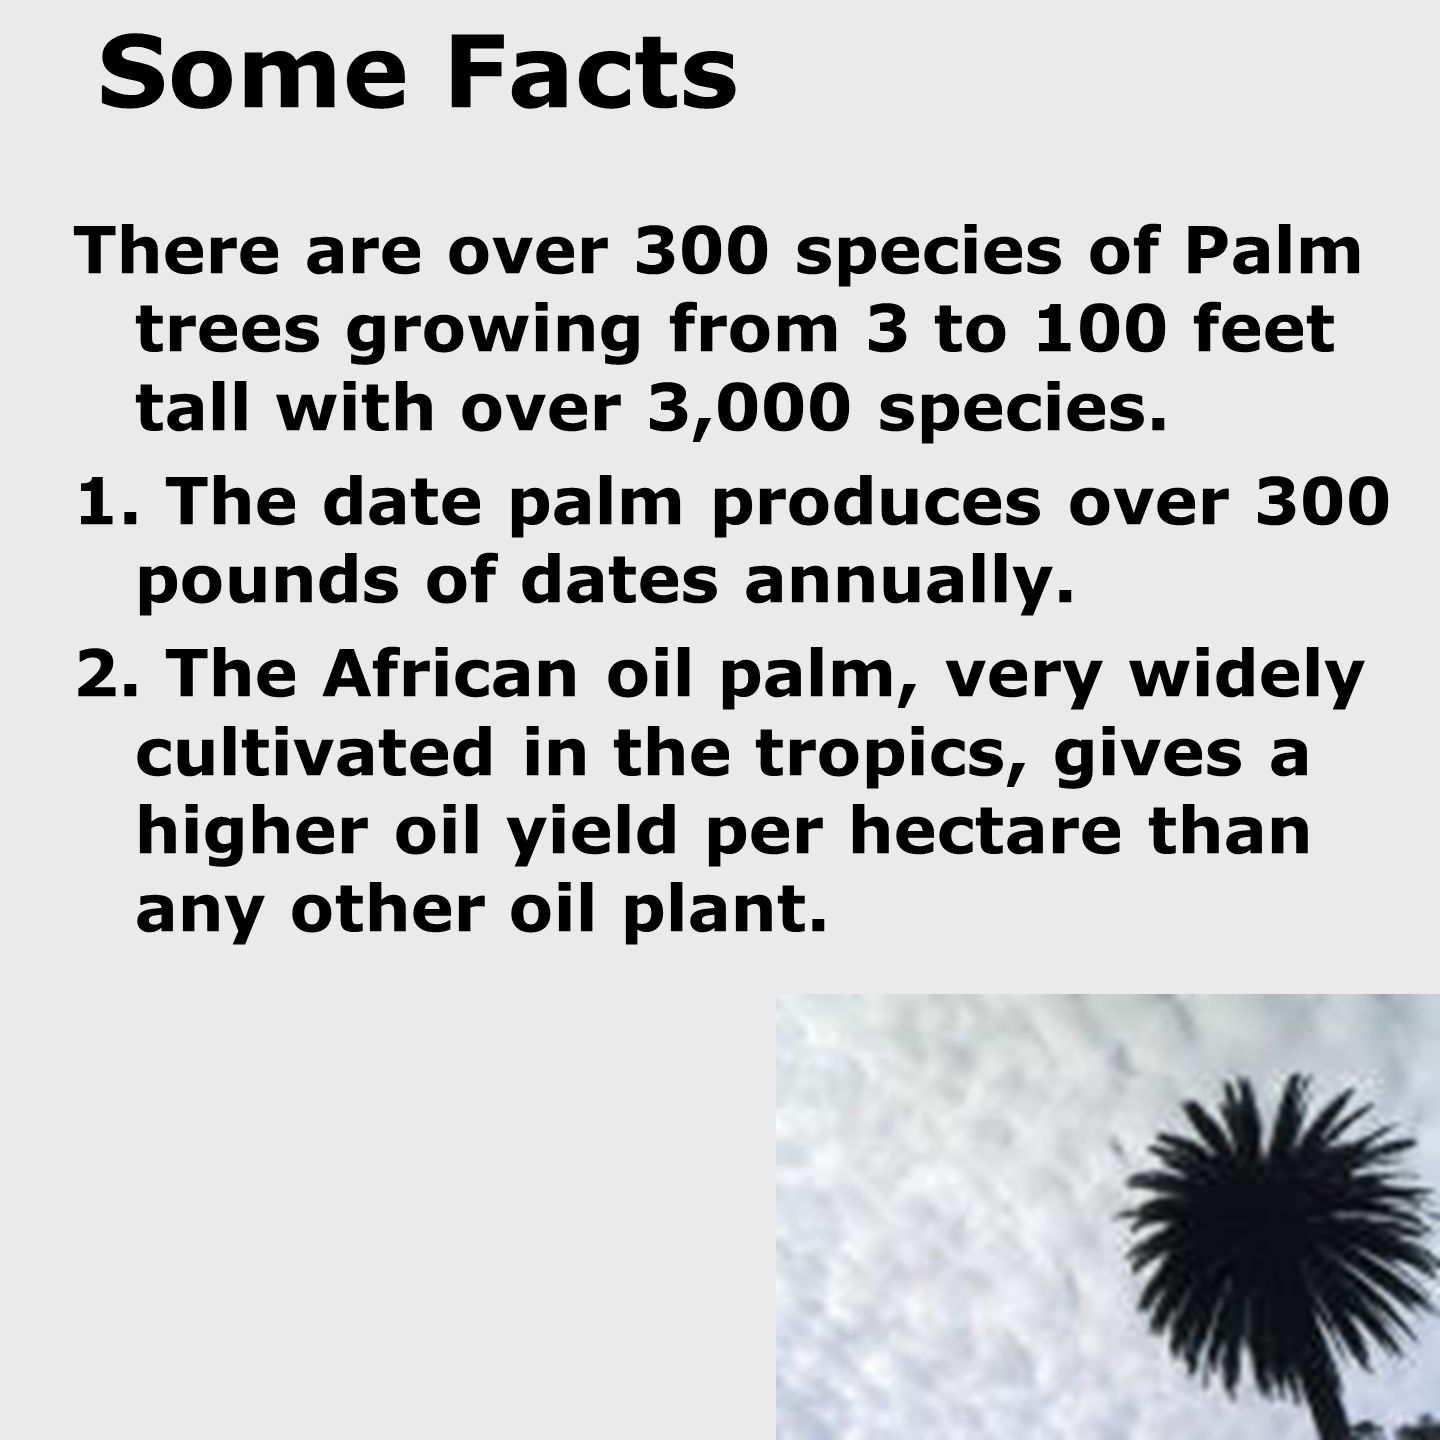 Some Facts There are over 300 species of Palm trees growing from 3 to 100 feet tall with over 3,000 species.